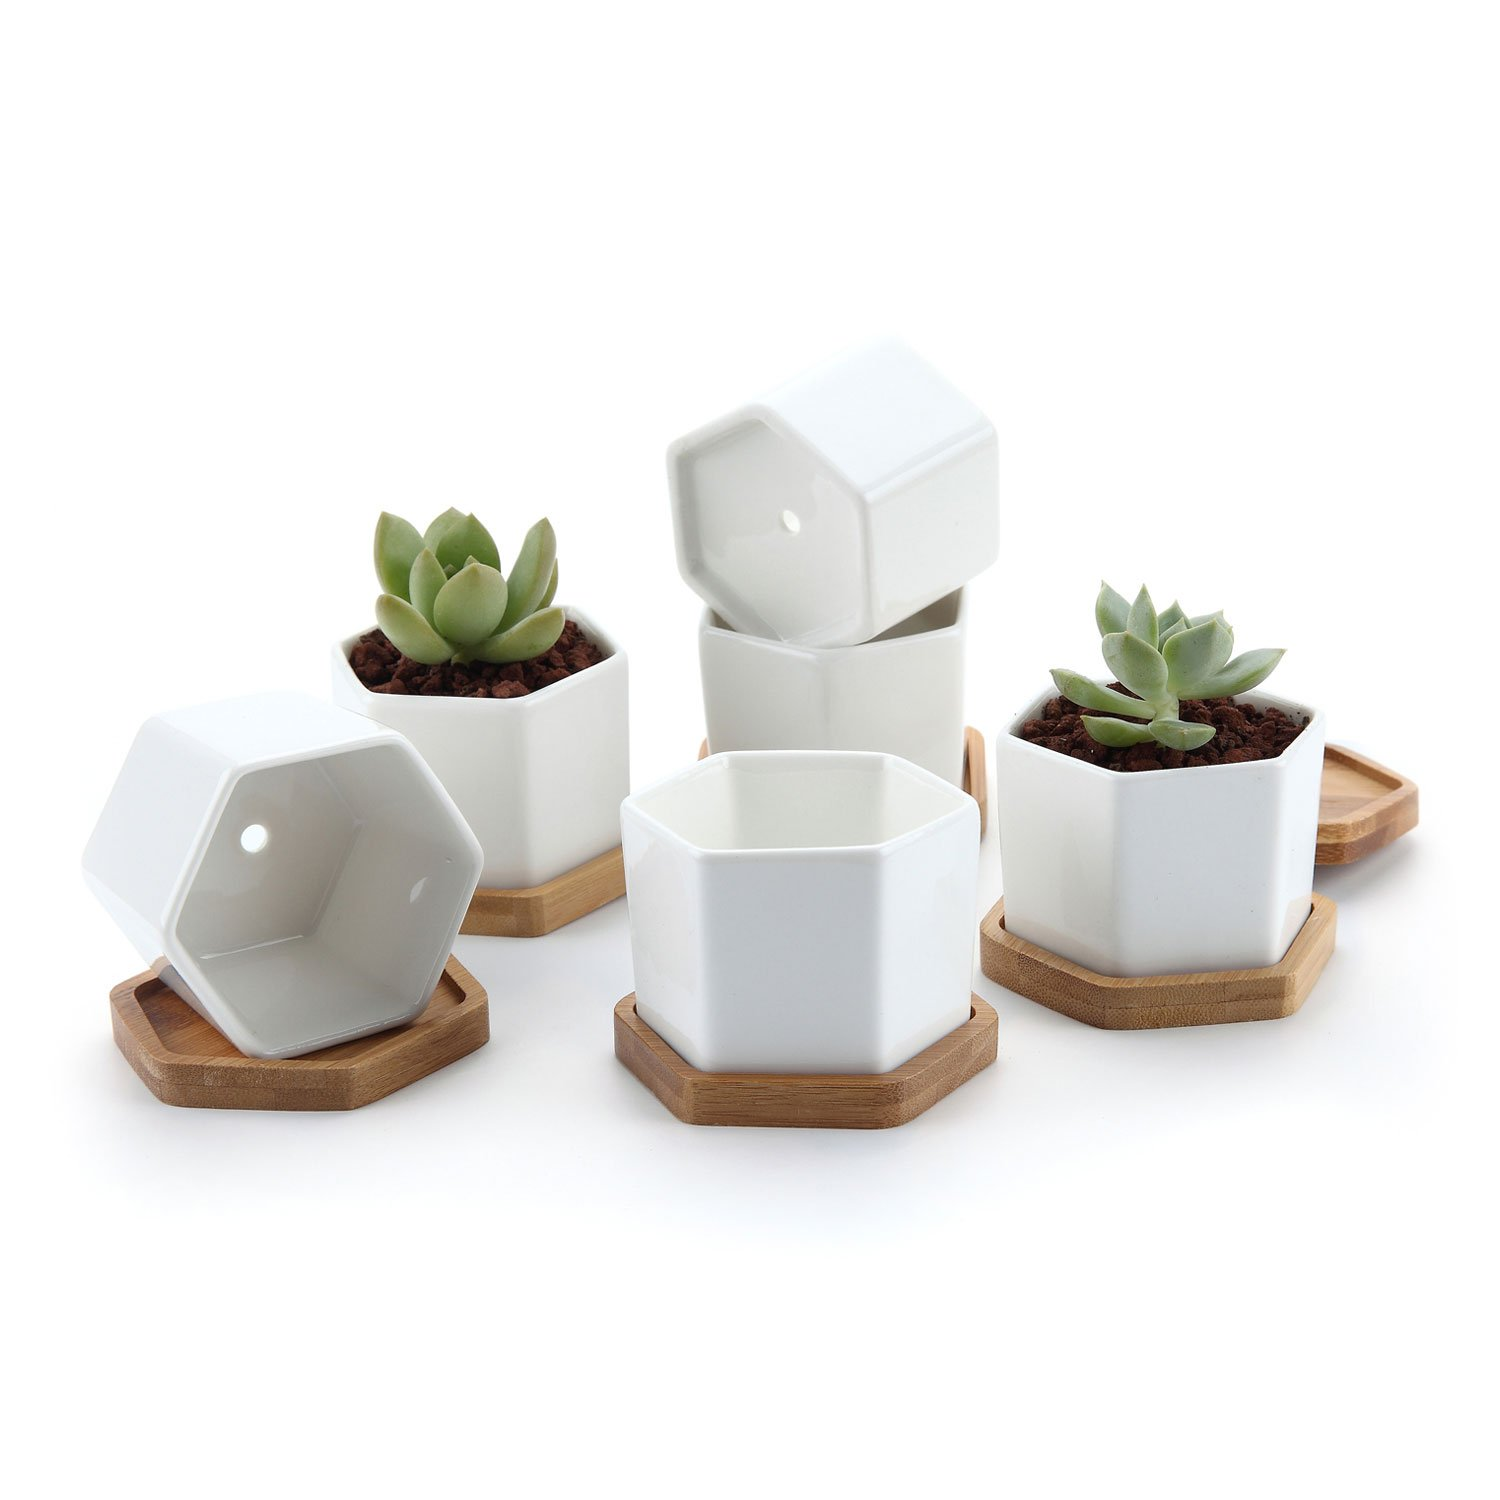 """T4U 2.75"""" White Ceramic Pots Hexagon Succulent Cactus Planter with Free Bamboo Tray for Home Decoration 1 Pack of 6"""